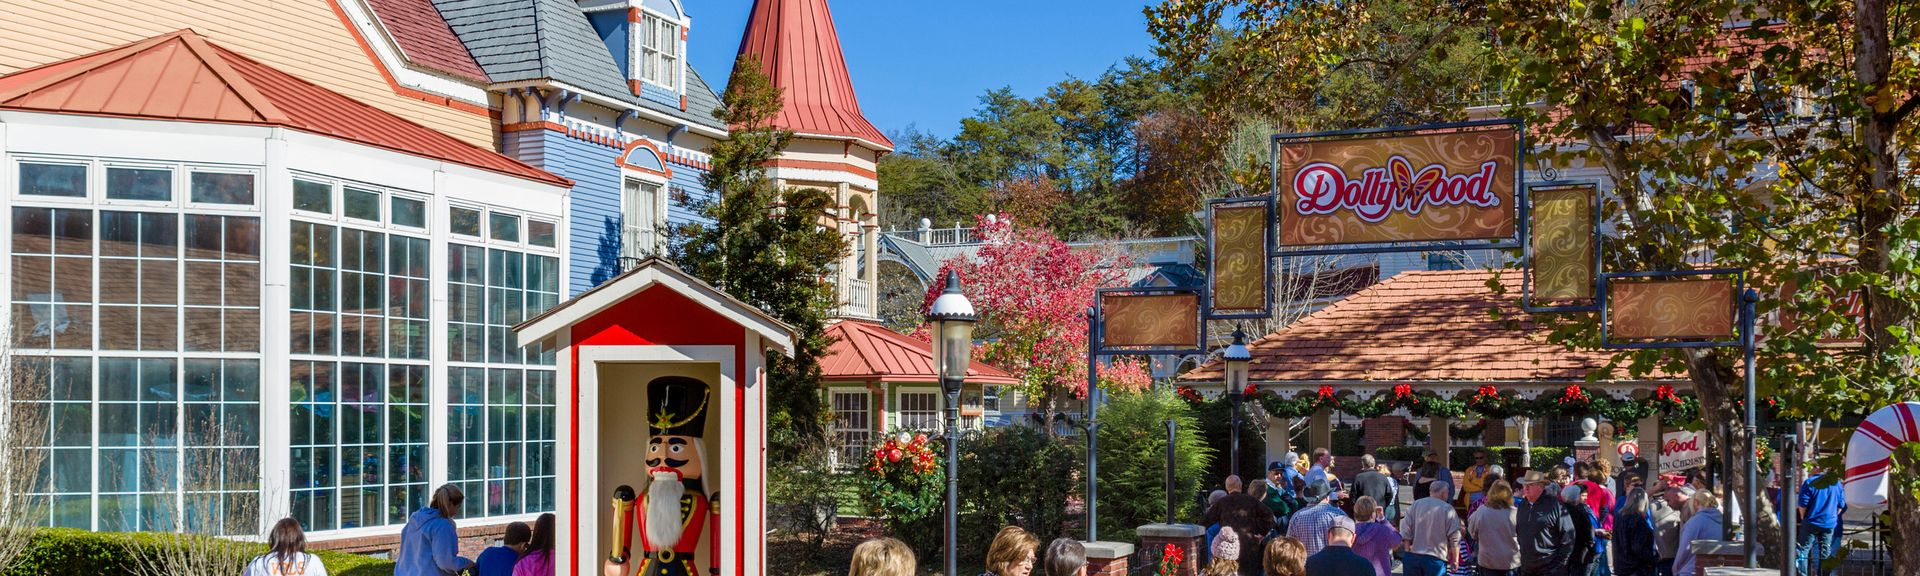 Dollywood, Pigeon Forge, Tennessee, Stati Uniti d'America